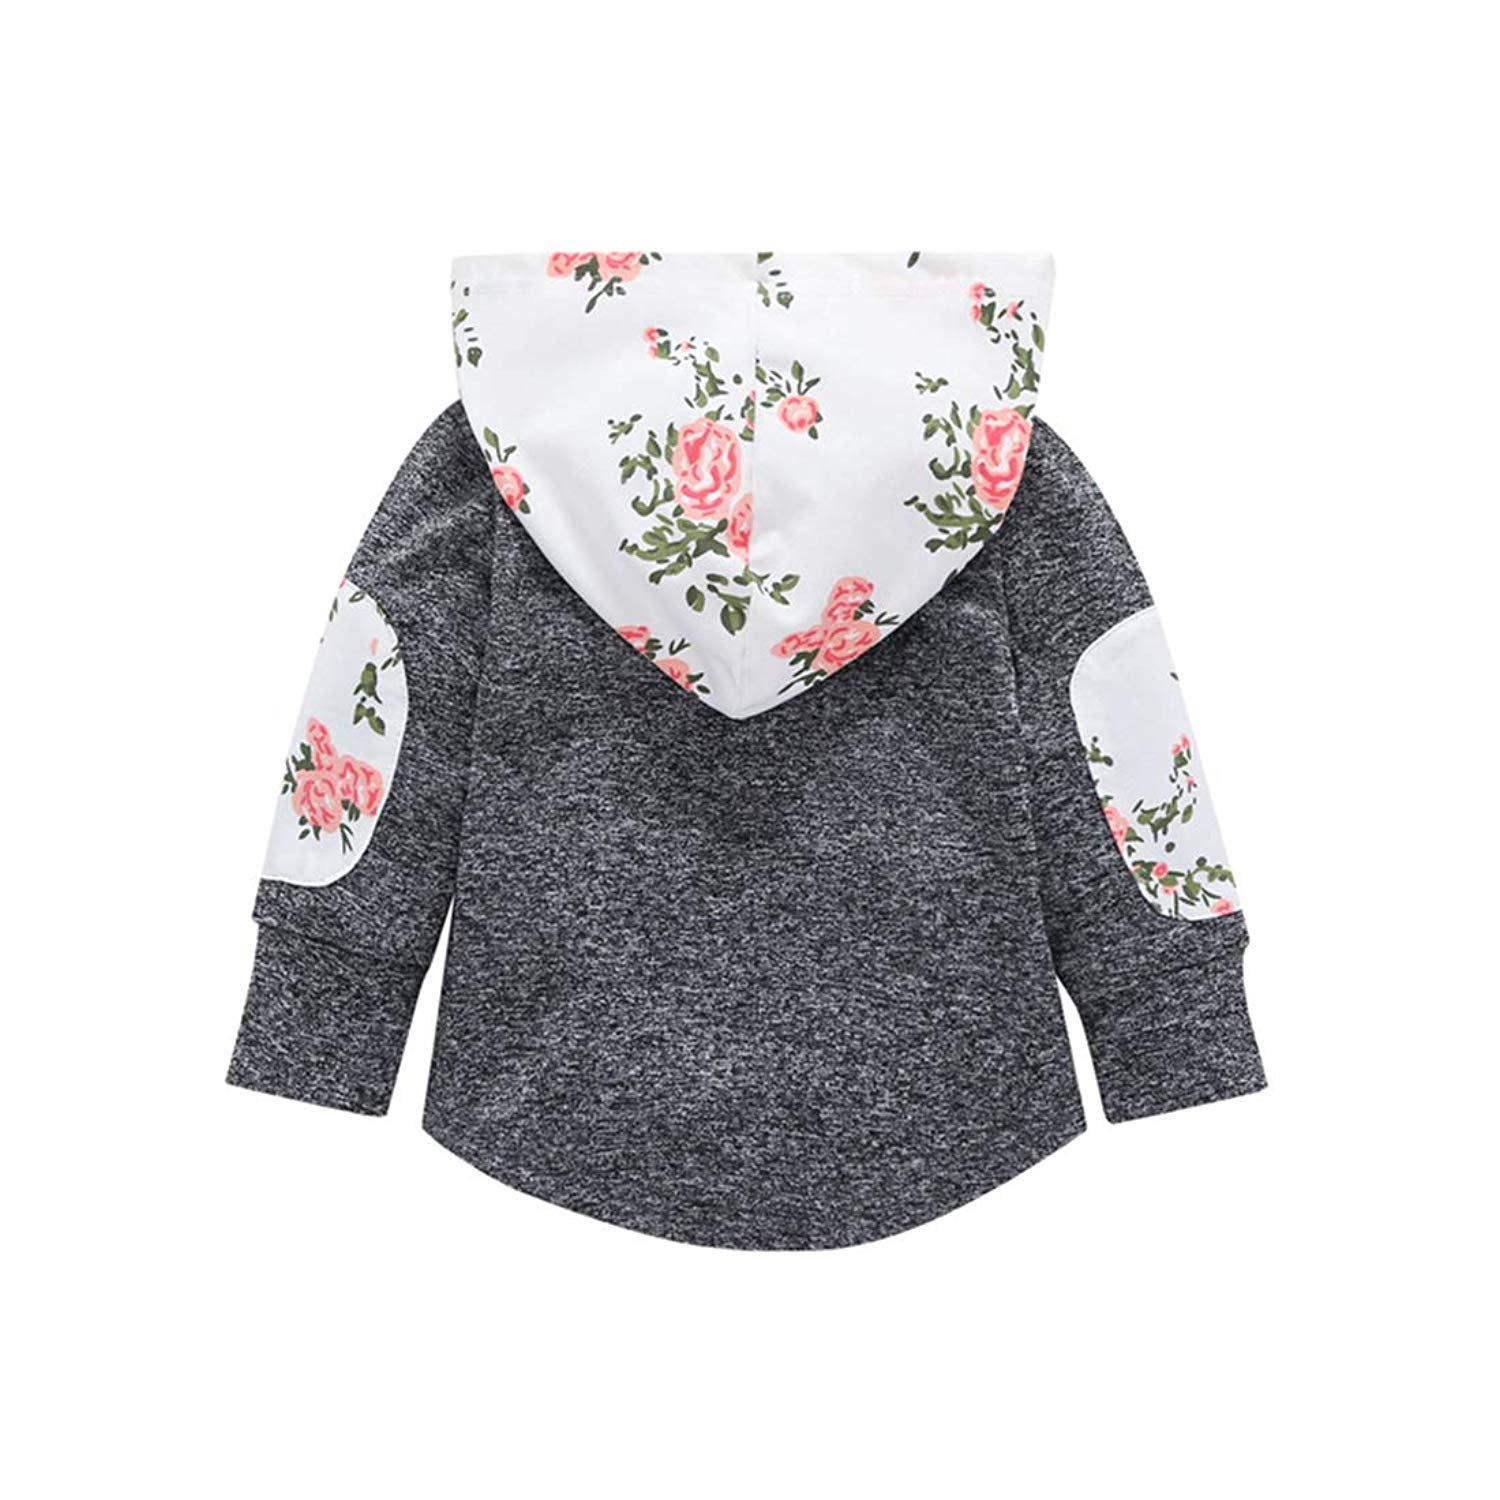 514348bdf Amazon.com: KONIGHT Kids Toddler Baby Girls Fall Outfit Floral Pocket  Hoodie Jackets Coat Clothes Tops Clothing: Clothing